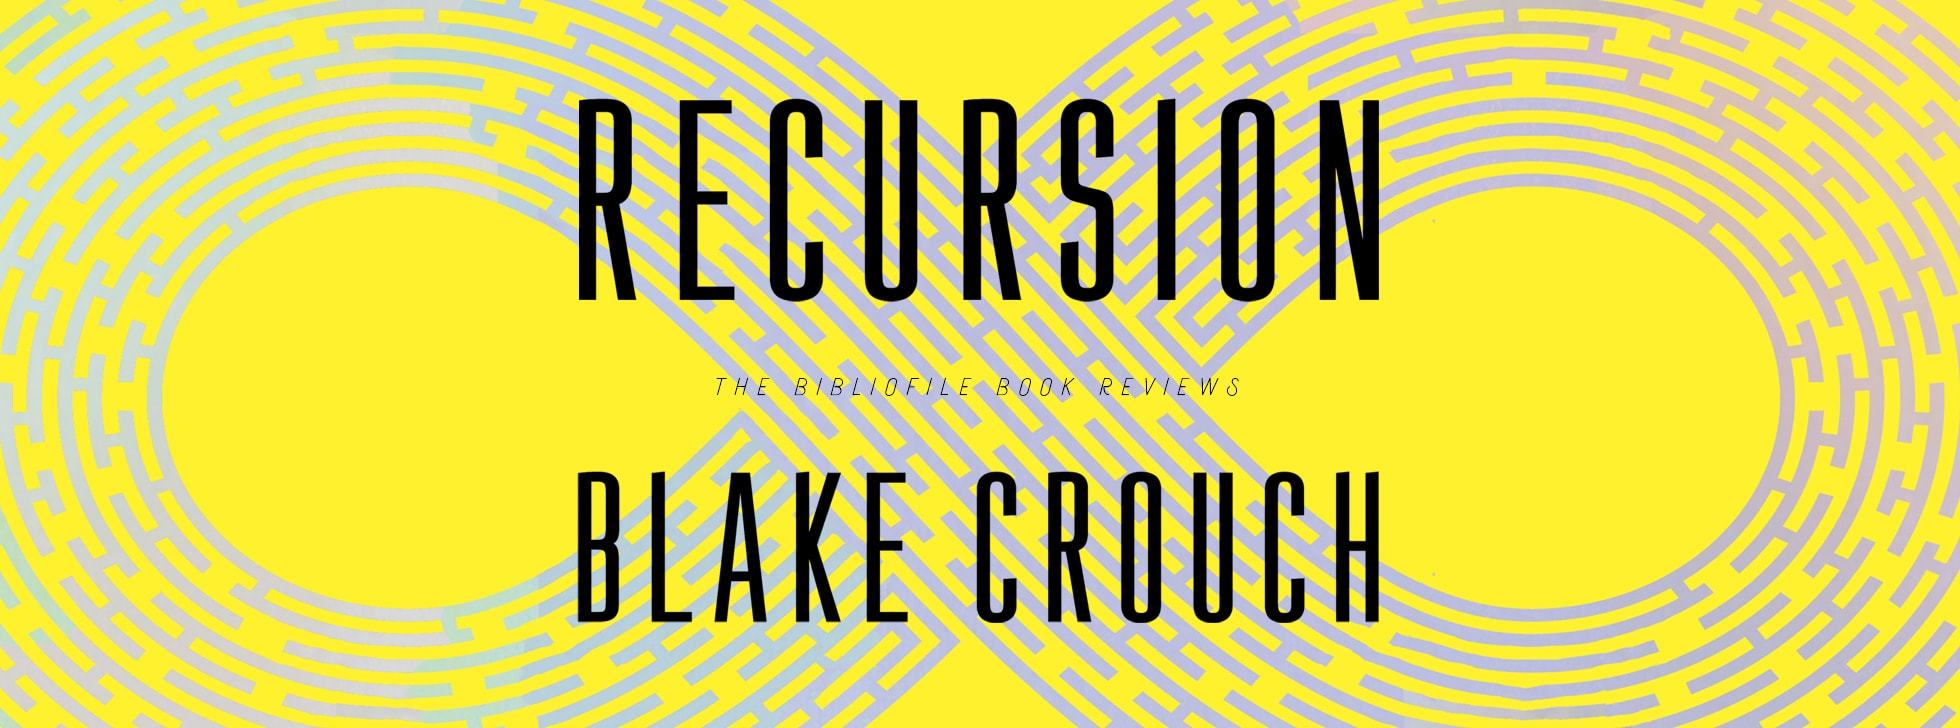 recursion blake crouch summary review